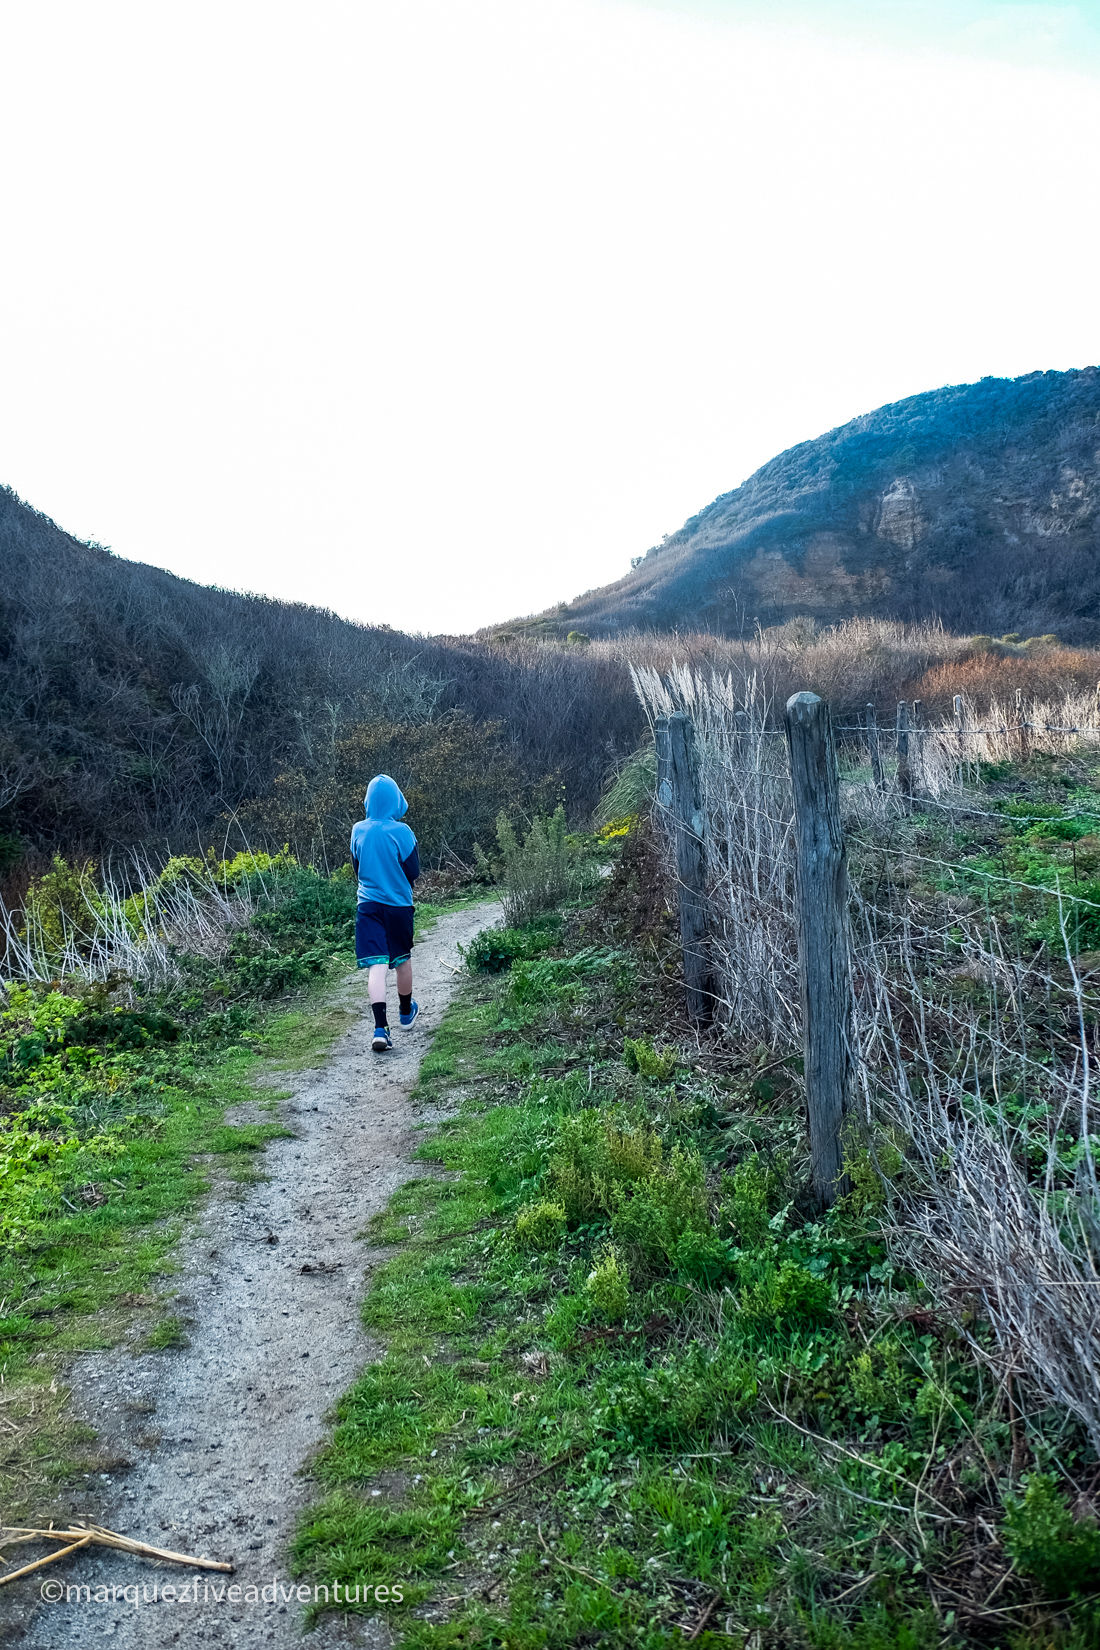 Hiking through a valley - here the trail switches to dirt. Cowell-Purisima Trail. Half Moon Bay, California